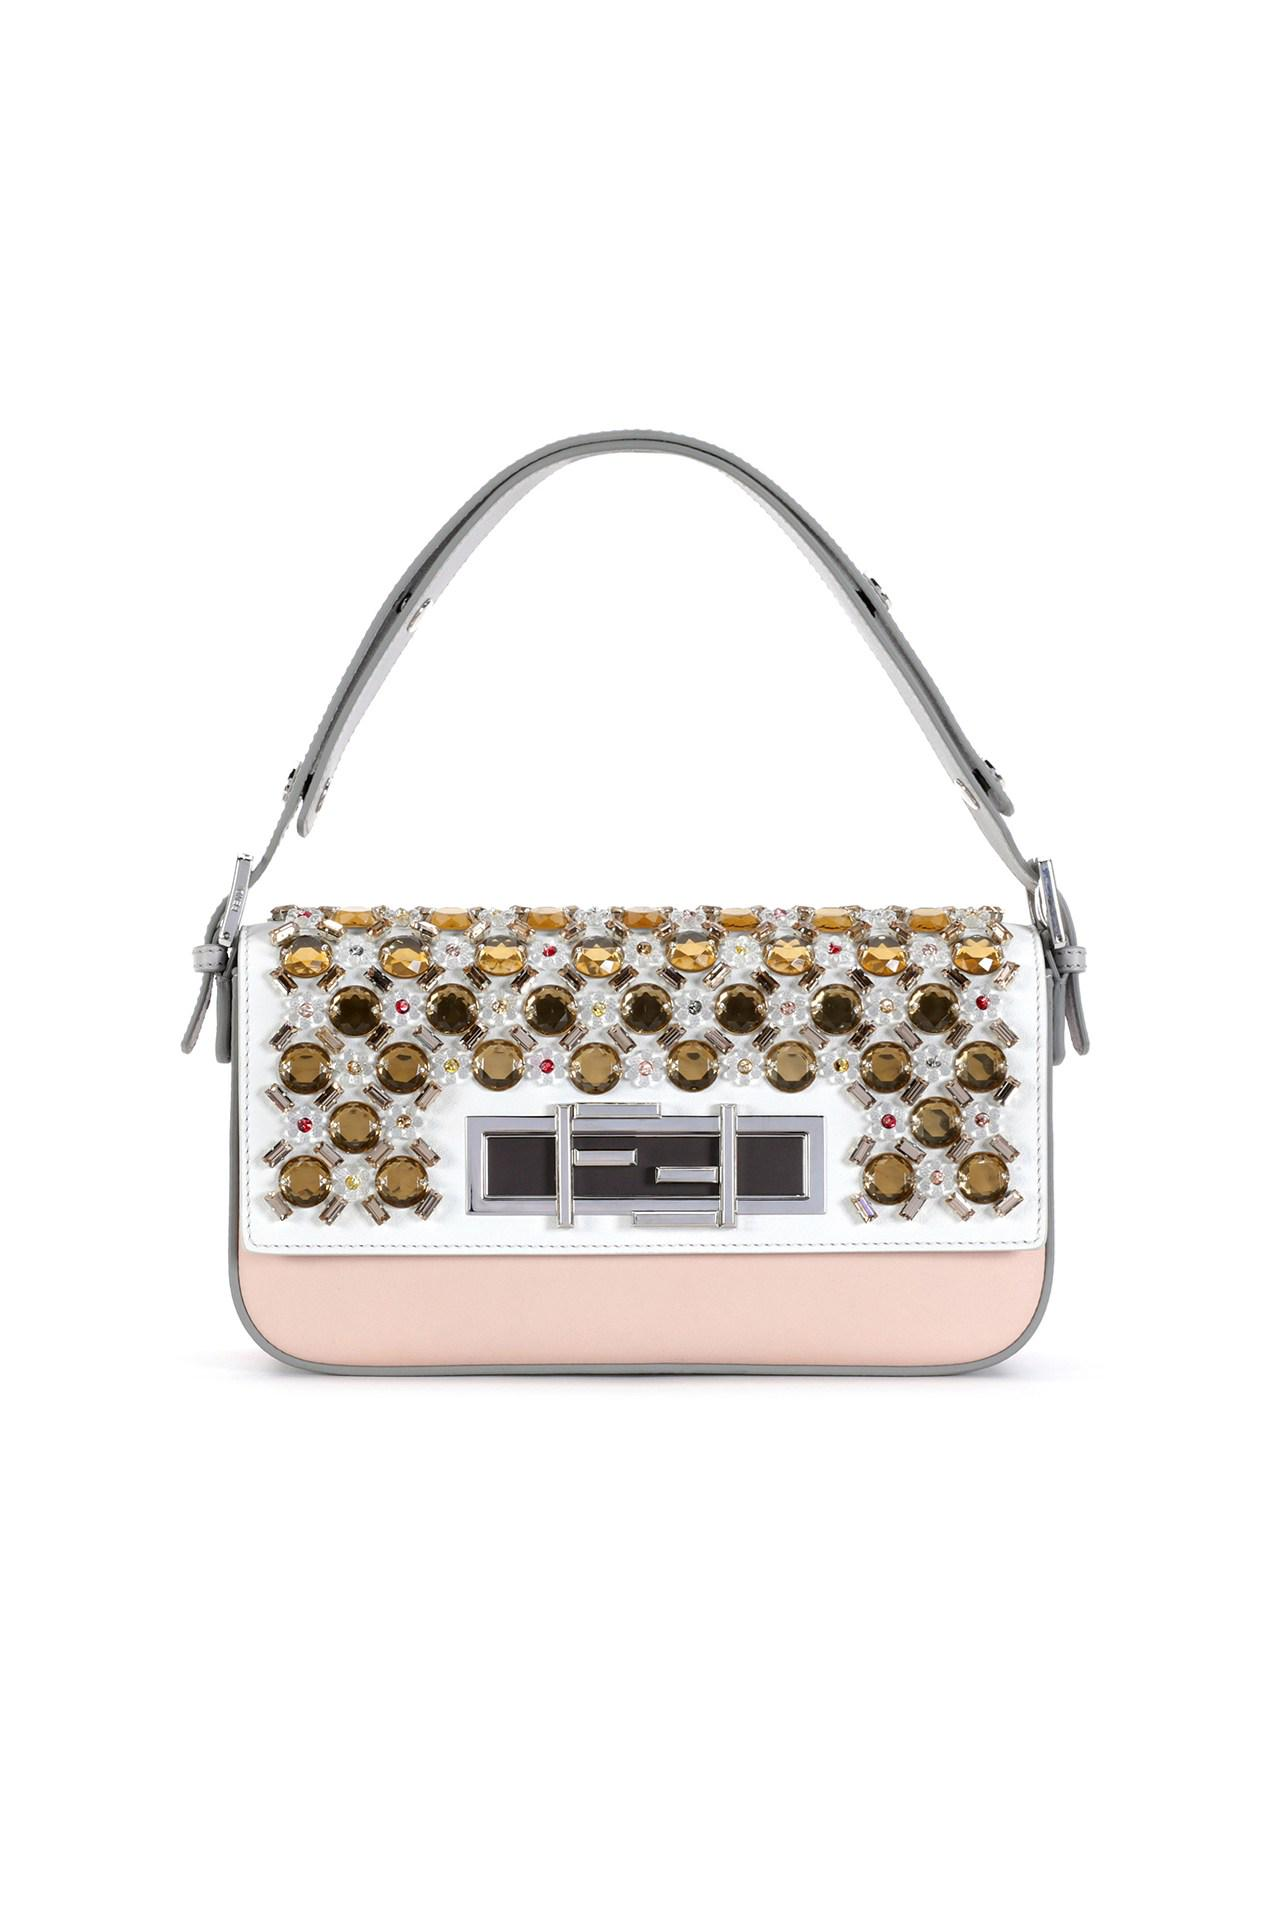 Why a slice of Rome is popping up @Harrods this summer @Fendi: http://t.co/ozfNolQfia http://t.co/q58JZaM3fL